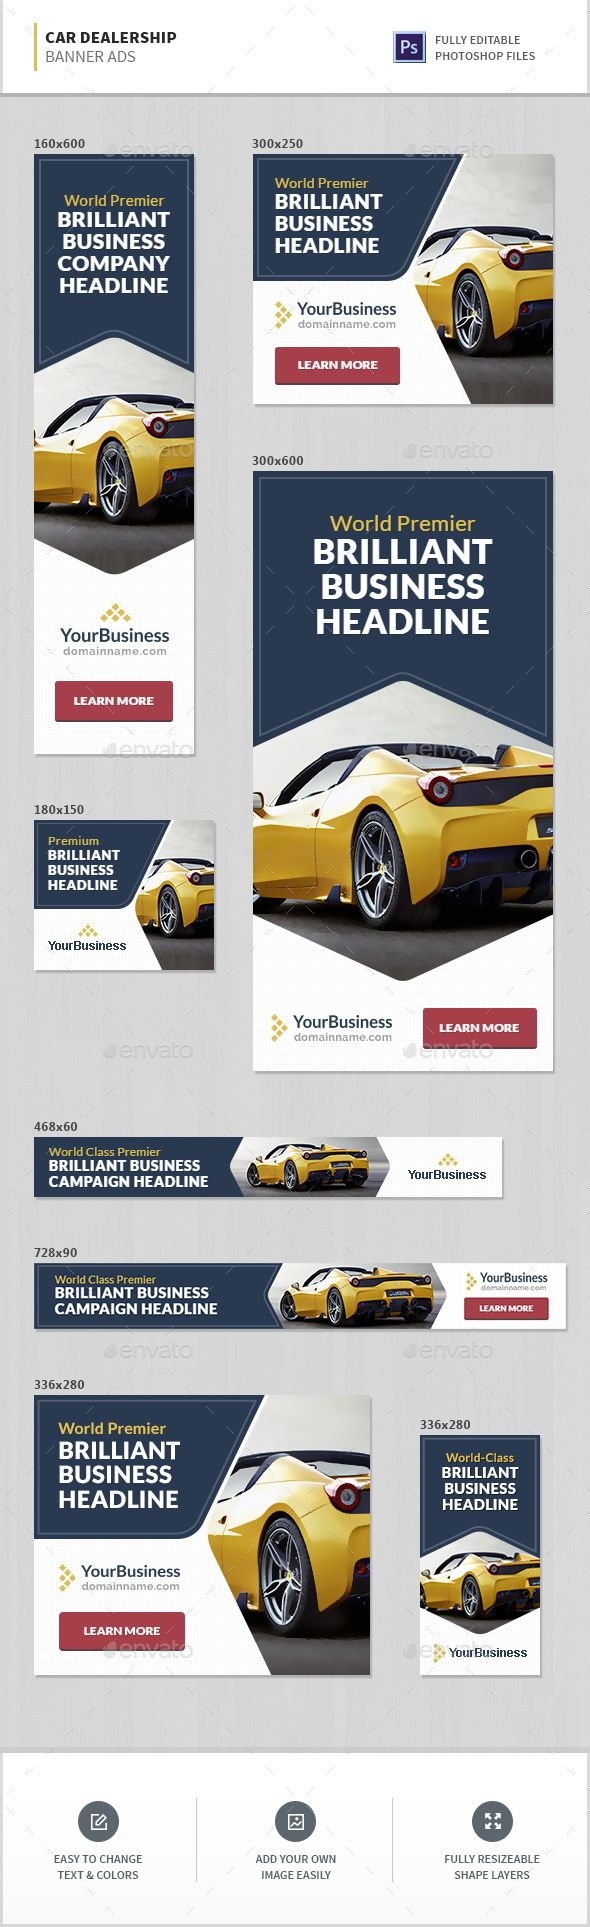 Design google banner ads - Car Dealership Banner Ads